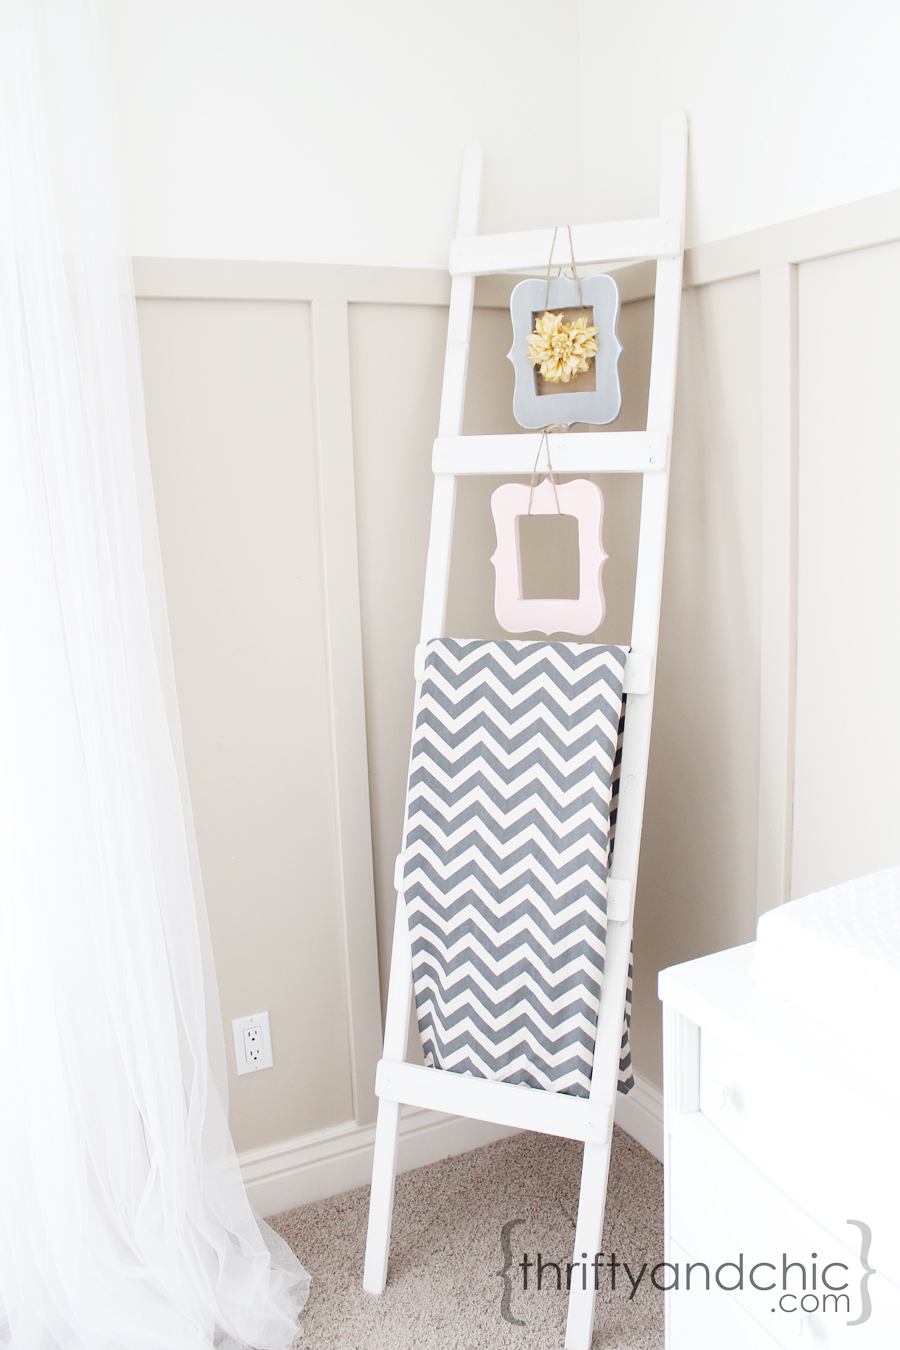 Thrifty and chic diy projects and home decor for Decor ladder